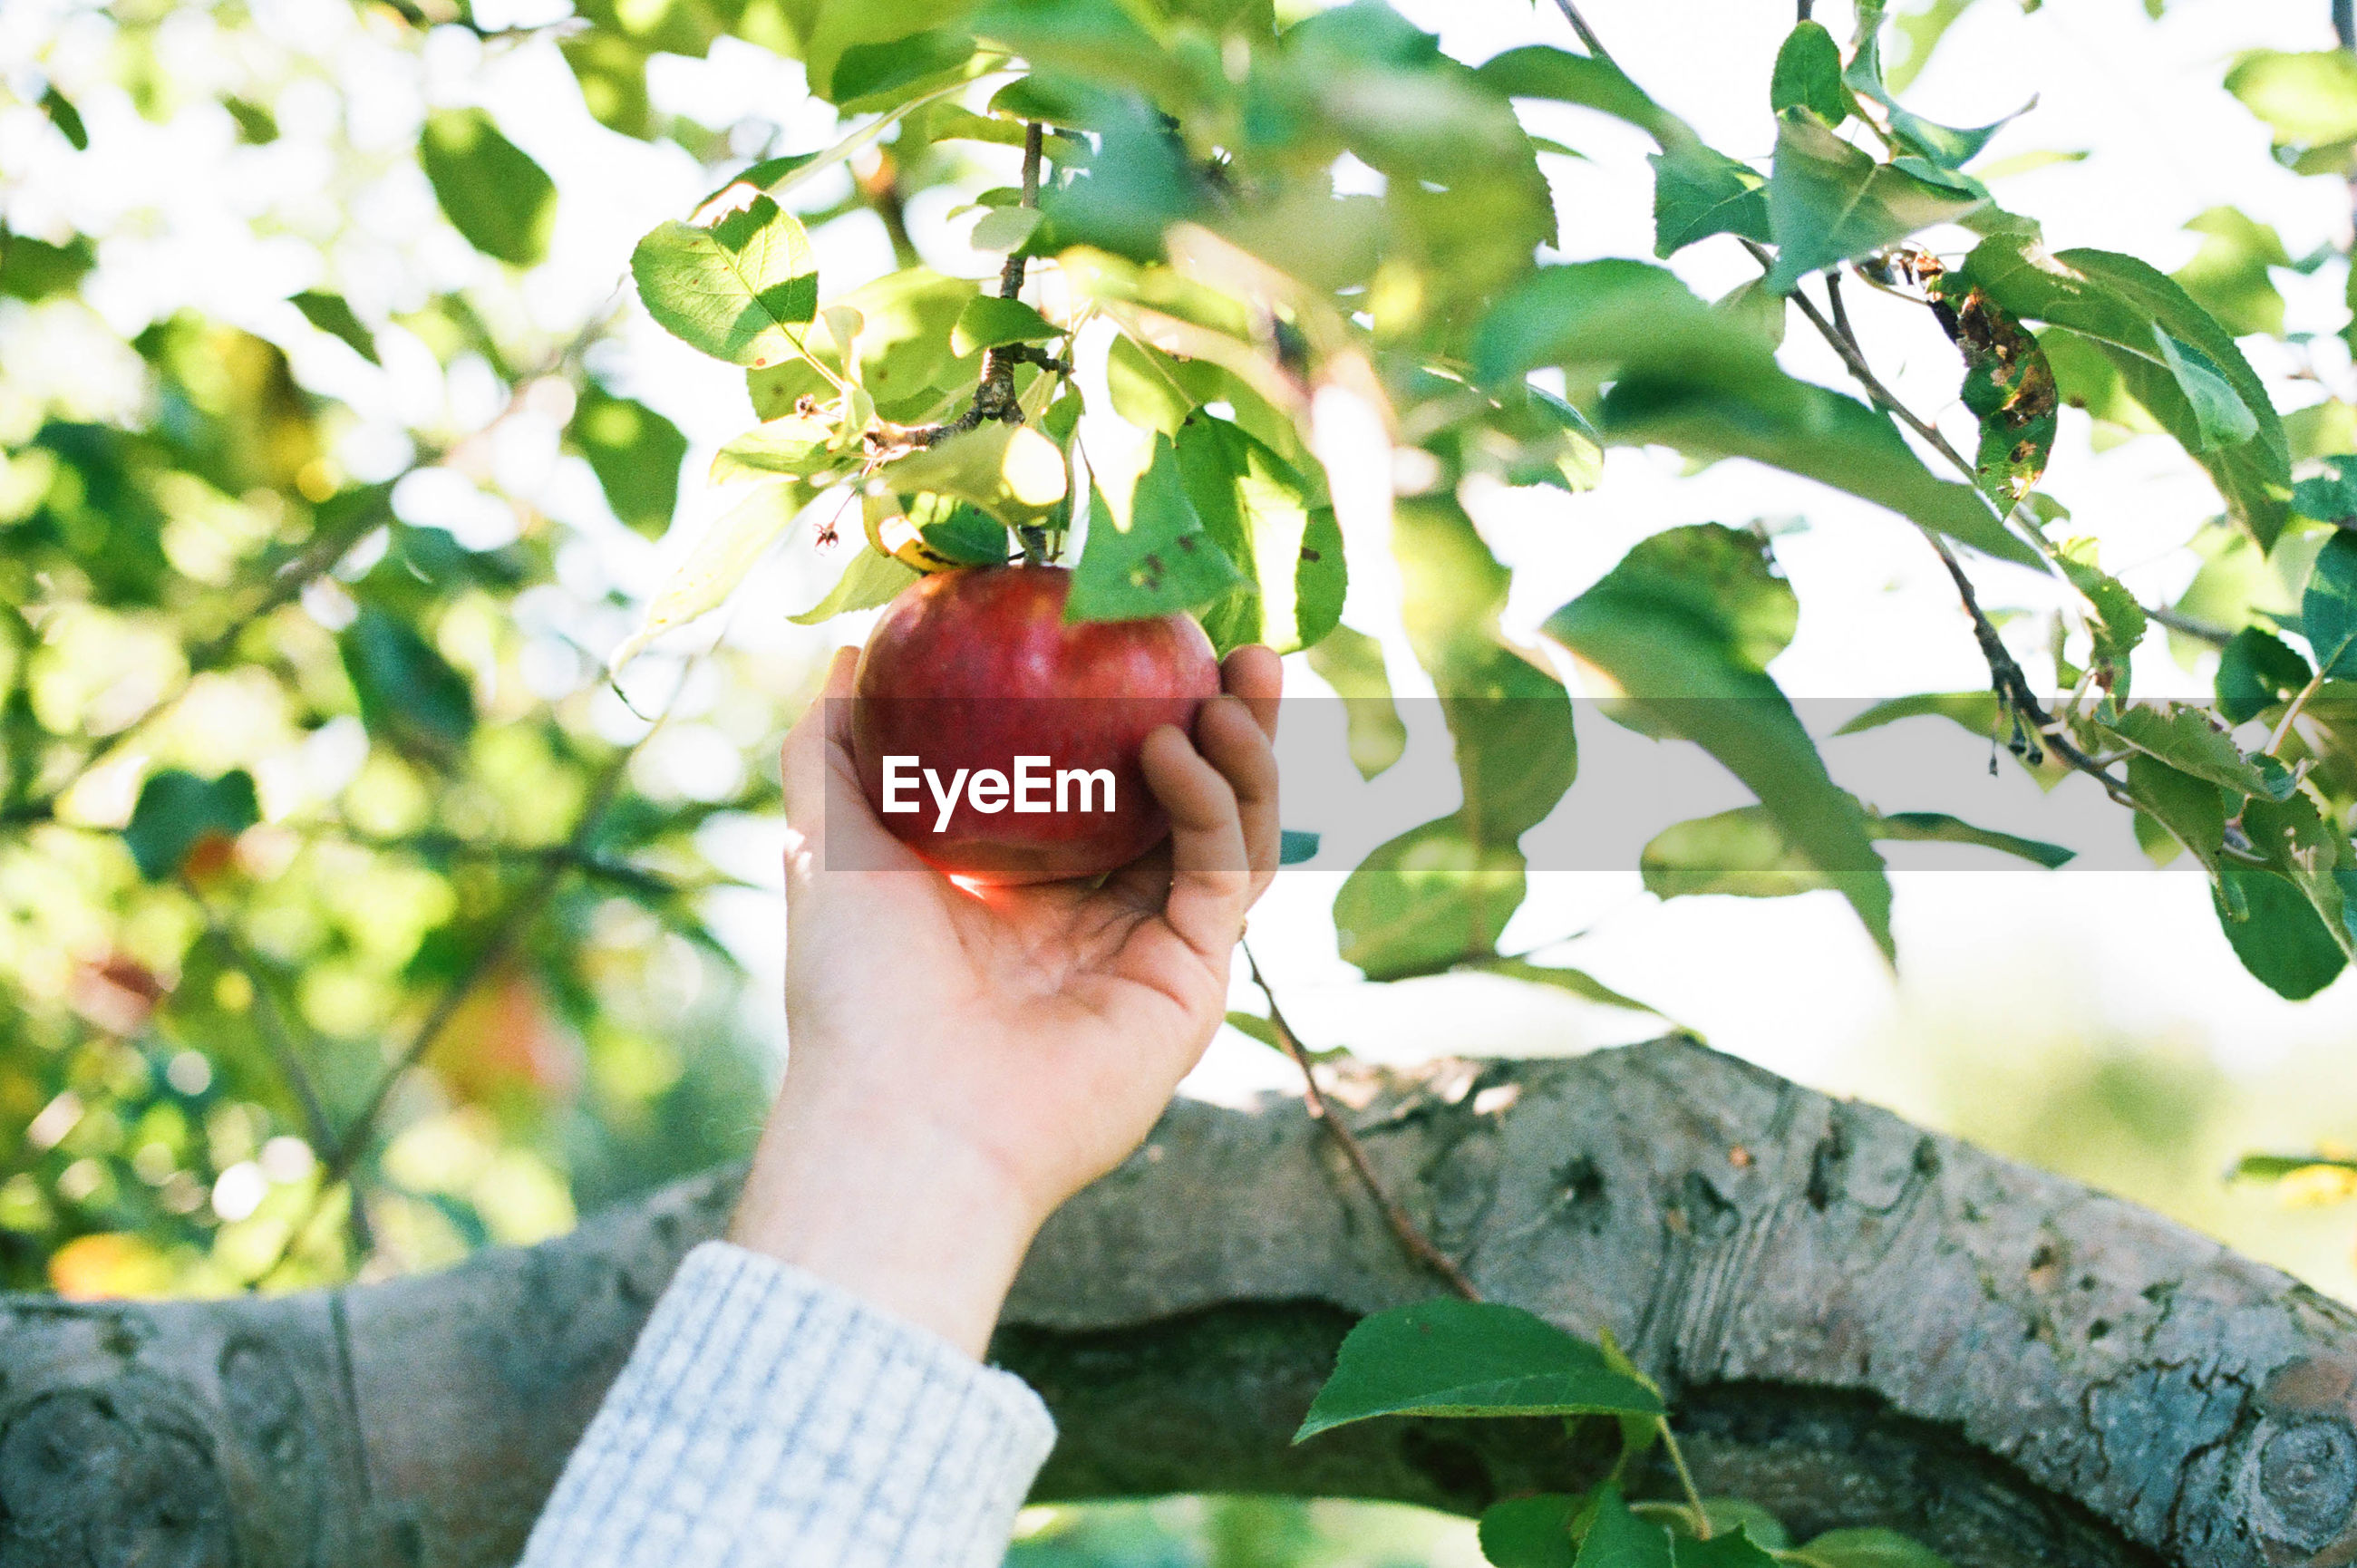 PERSON HOLDING FRUITS ON TREE